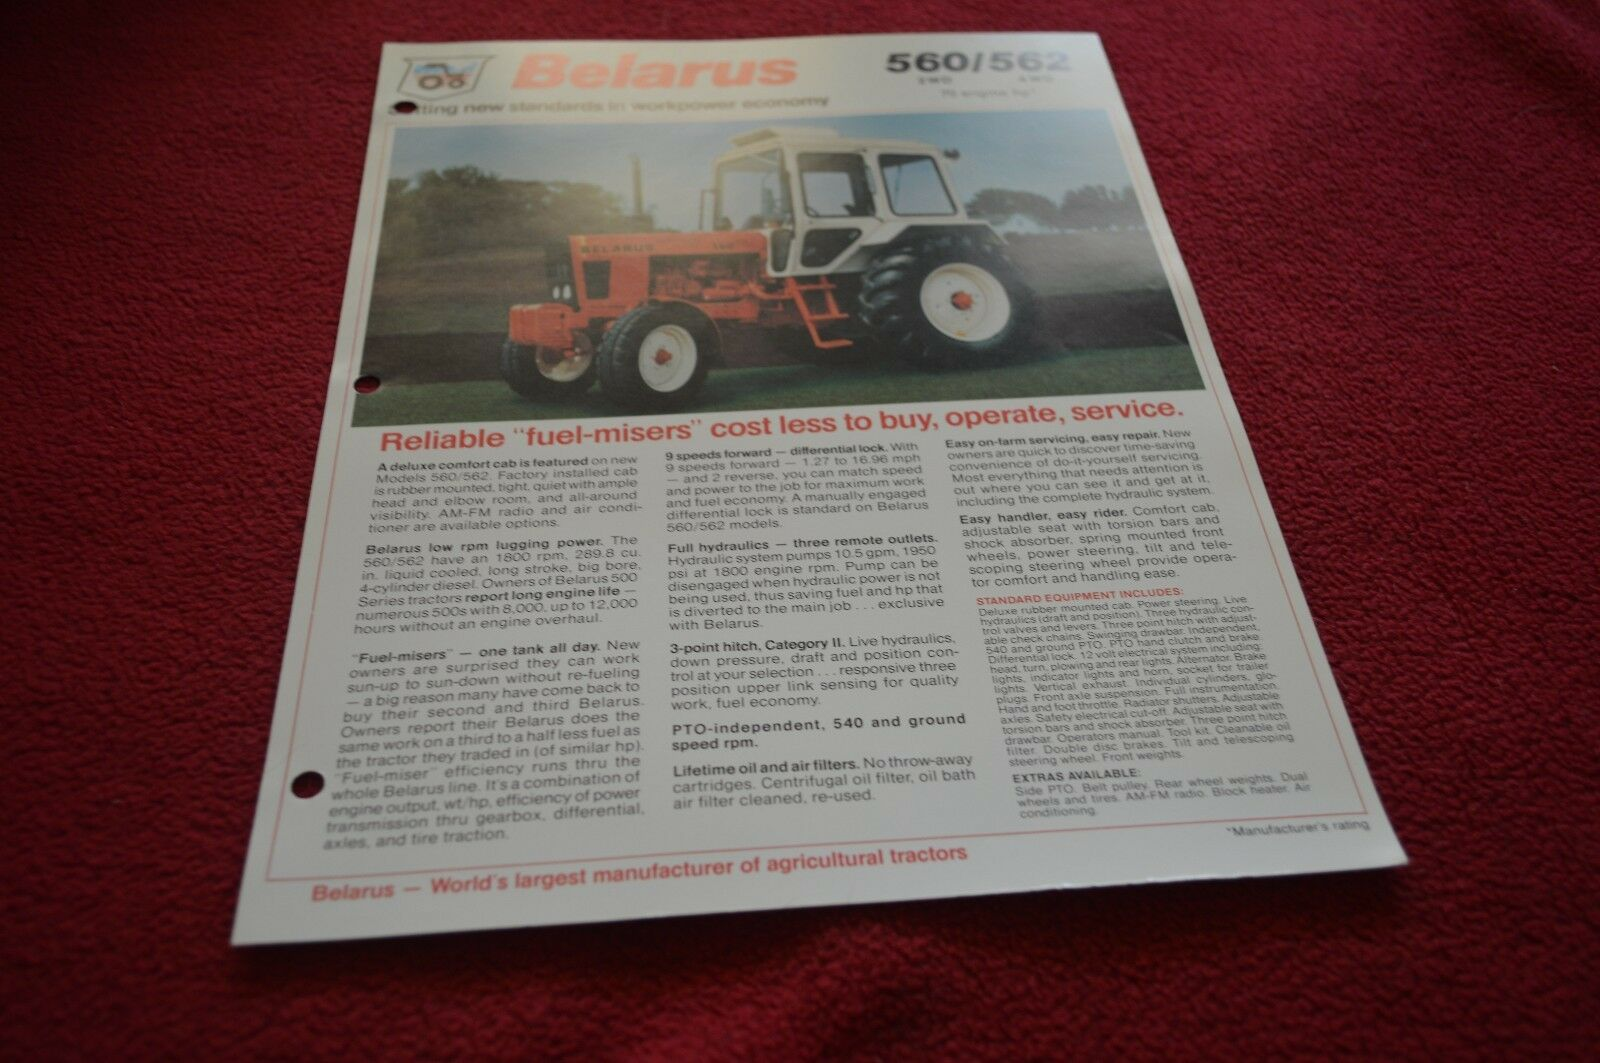 hight resolution of belarus 250as tractor wiring diagram wiring diagrams schematics rh loridyan com on john deere stx38 wiring